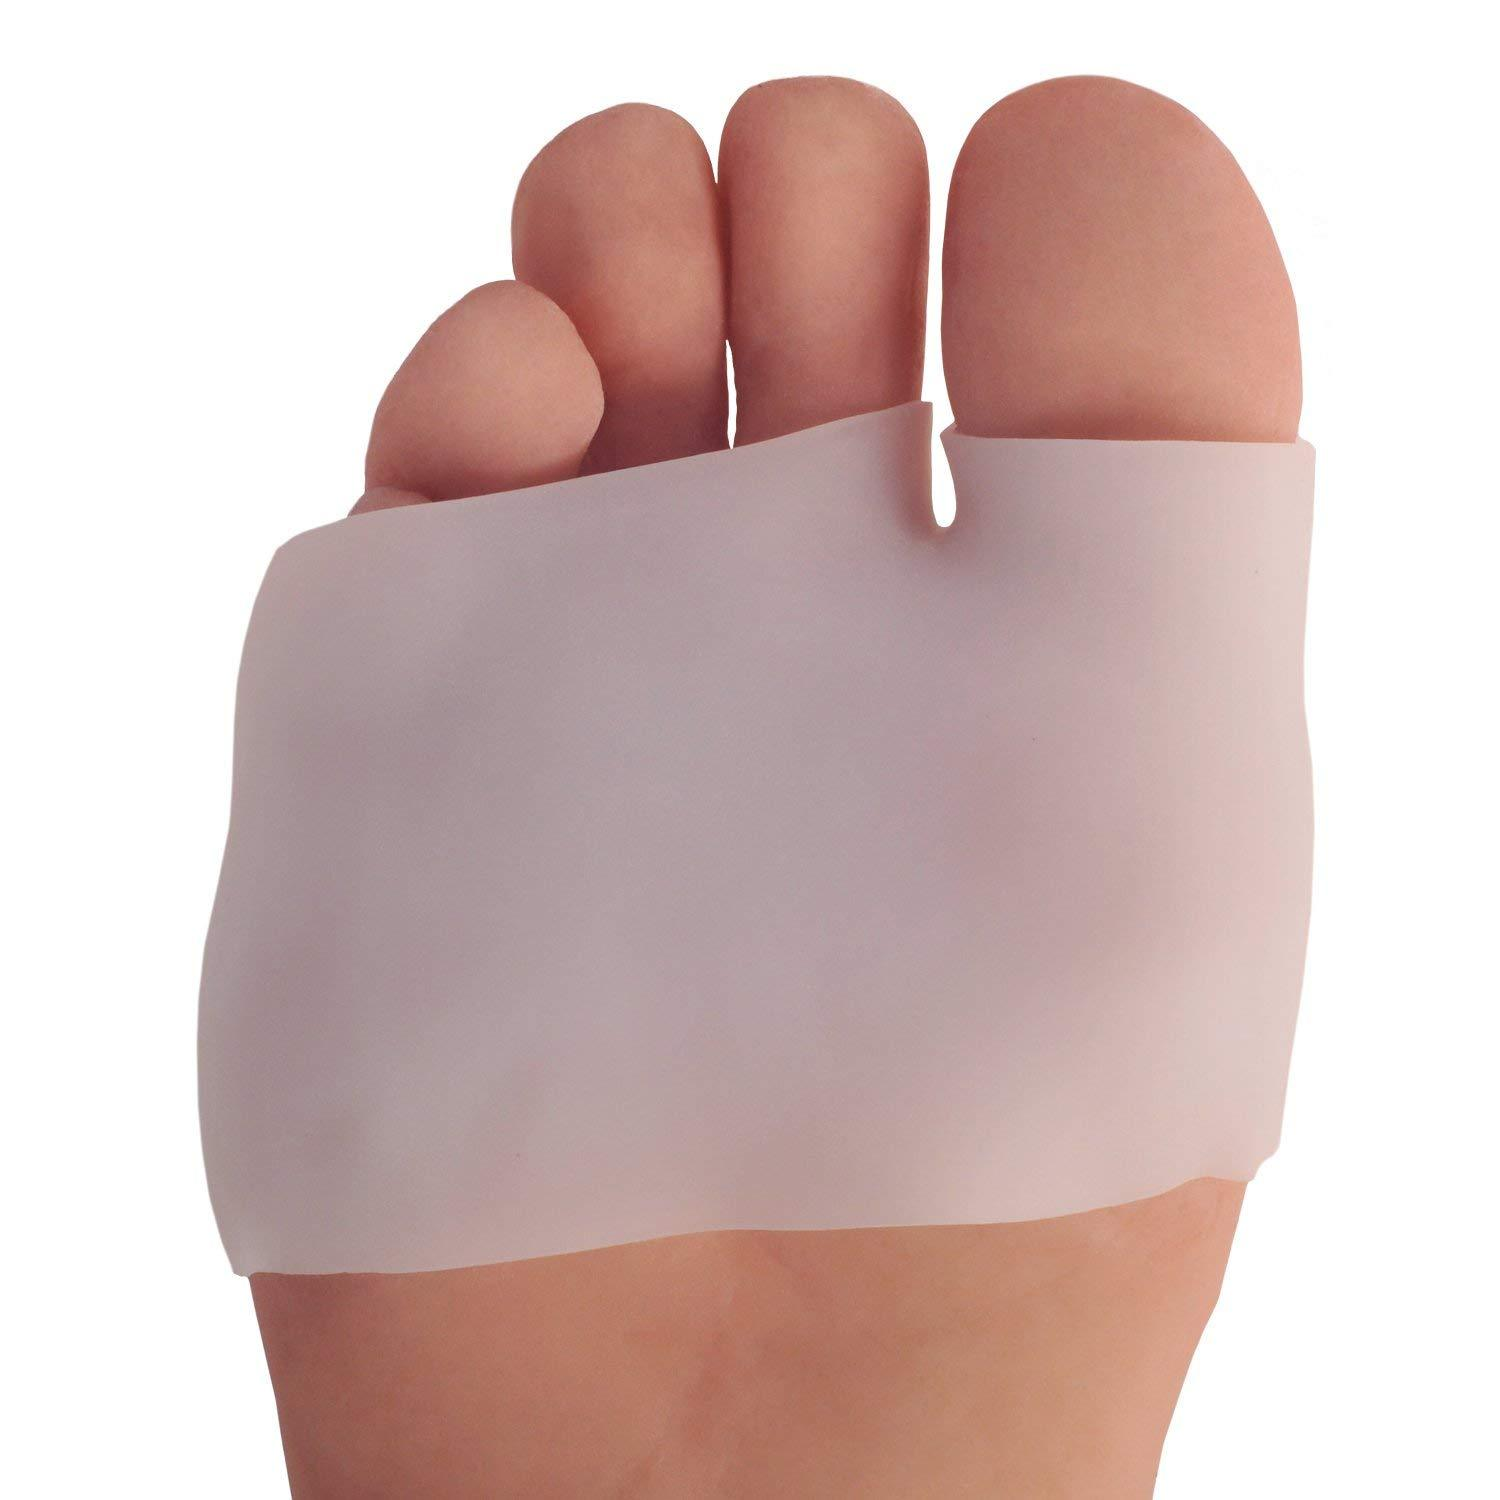 Dr. Frederick's Original Half Toe Sleeve Metatarsal Pads -- 2 Pieces - for Blisters, Calluses, Bunions, and Forefoot Pain Foot Pain Dr. Frederick's Original